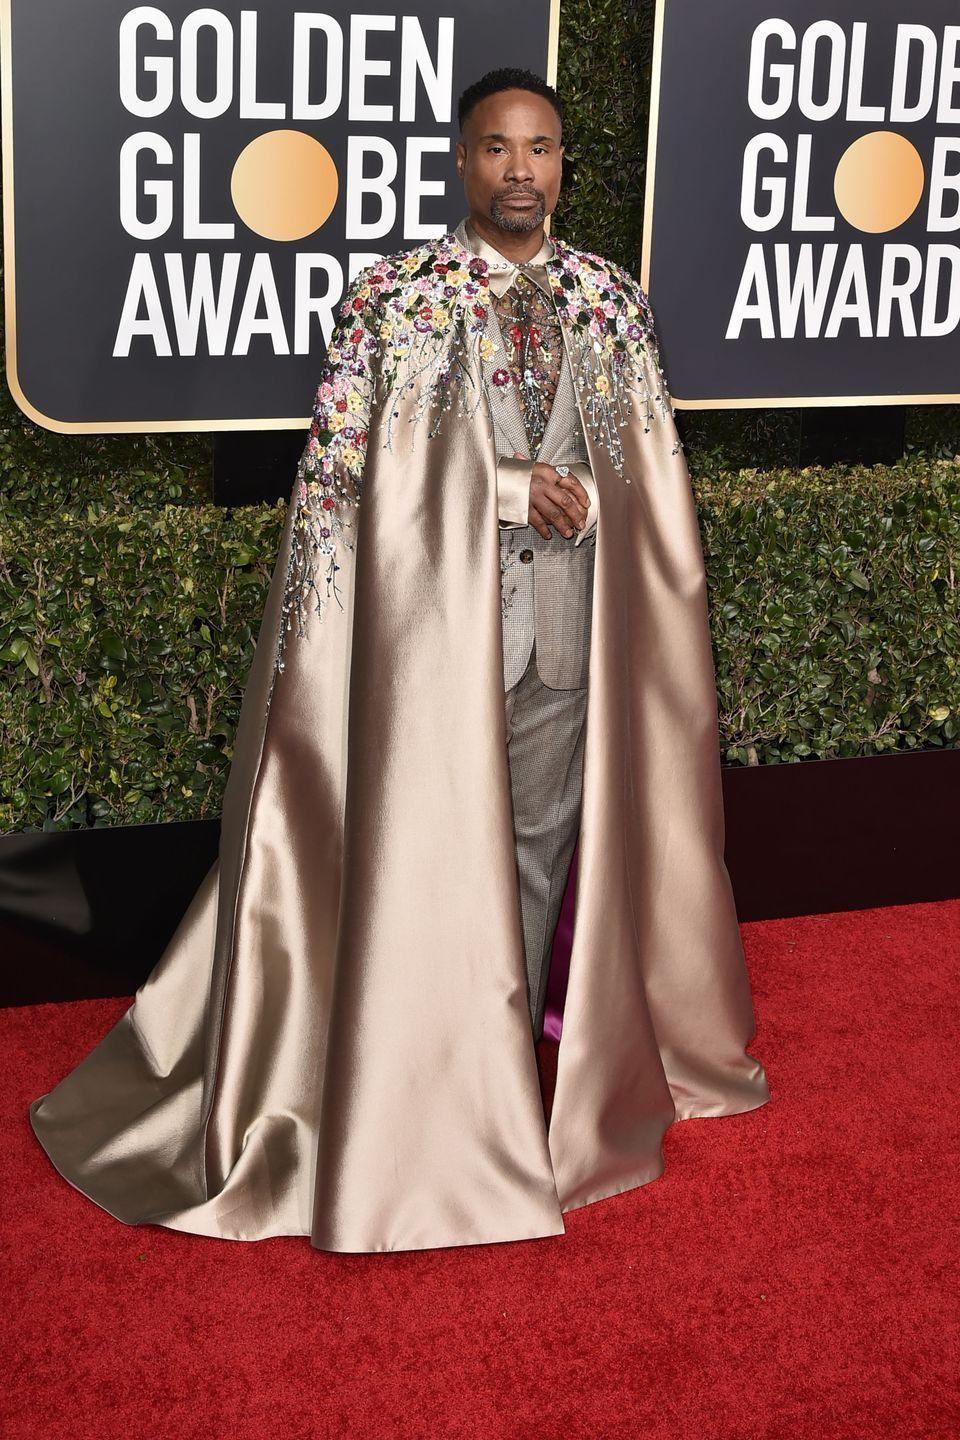 """<p>Billy Porter wore an embroidered suit and cape by Randi Rahm at the 2019 Golden Globes, which – according to <a href=""""https://www.hollywoodreporter.com/news/billy-porter-s-ott-golden-globes-ensemble-took-6-months-make-1173932"""" rel=""""nofollow noopener"""" target=""""_blank"""" data-ylk=""""slk:The Hollywood Report"""" class=""""link rapid-noclick-resp"""">The Hollywood Report</a><a href=""""https://www.hollywoodreporter.com/news/billy-porter-s-ott-golden-globes-ensemble-took-6-months-make-1173932"""" rel=""""nofollow noopener"""" target=""""_blank"""" data-ylk=""""slk:er"""" class=""""link rapid-noclick-resp"""">er</a>– took six months to make. Porter also wore three brooches and a ring by jeweler Oscar Heyman. </p>"""